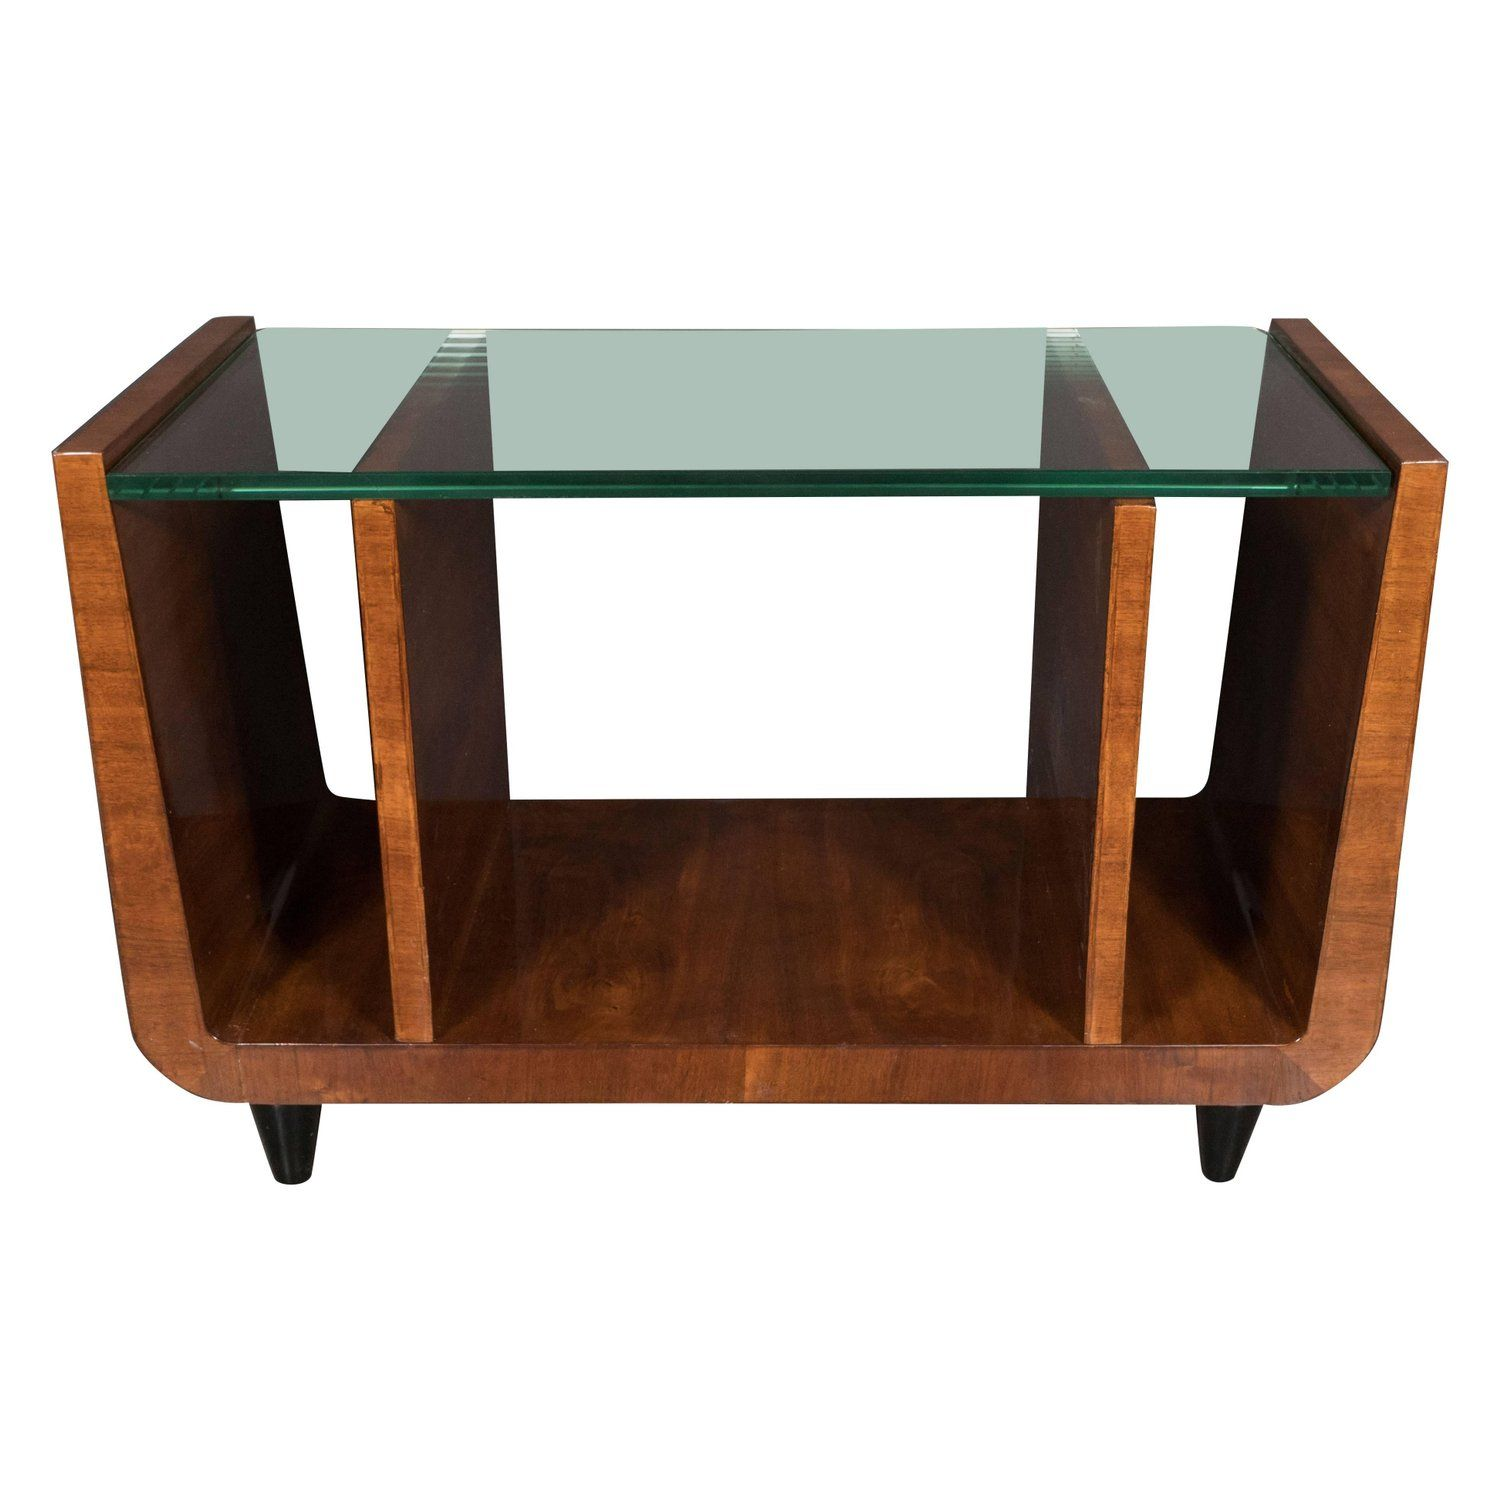 Art Deco Bookmatched Walnut and Black Lacquer Cocktail Table